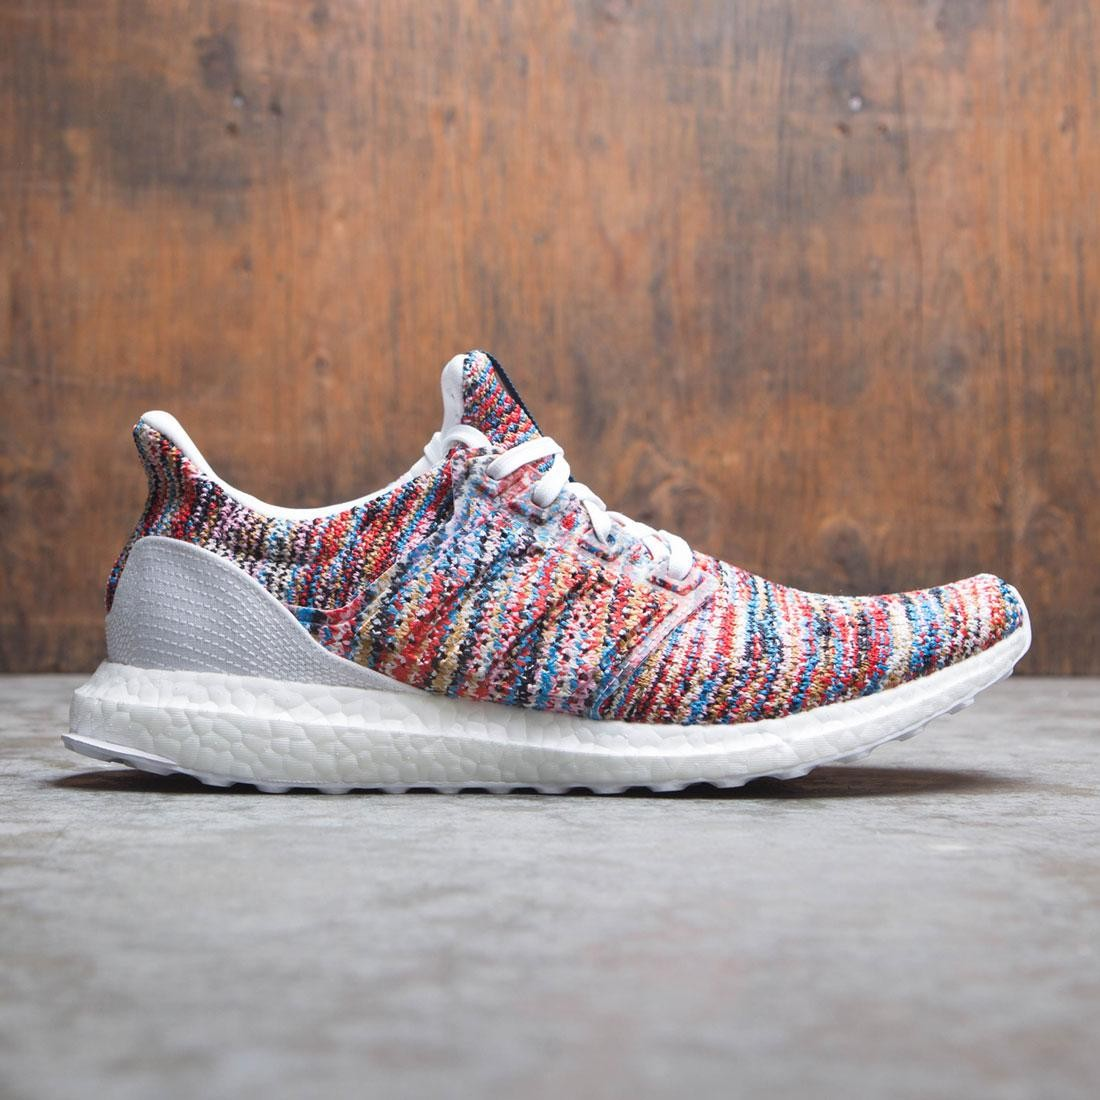 9ea78b026c0c3 Adidas x Missoni Men UltraBOOST CLIMA white shock cyan active red